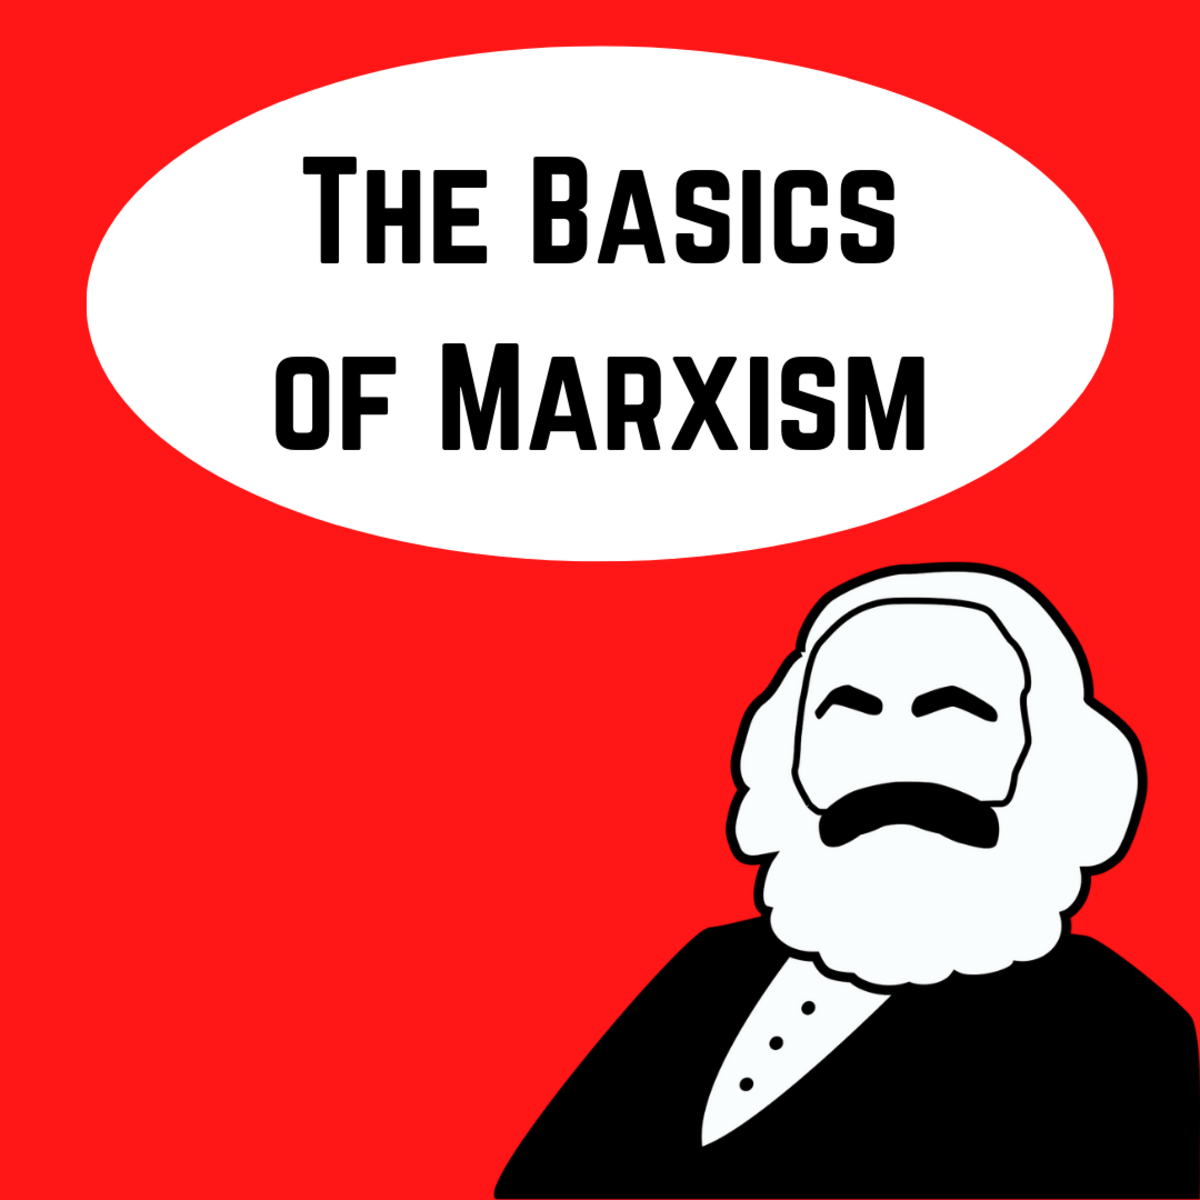 This article will help you understand the basic concepts of Marxism, as well as provide interesting videos and further readings.